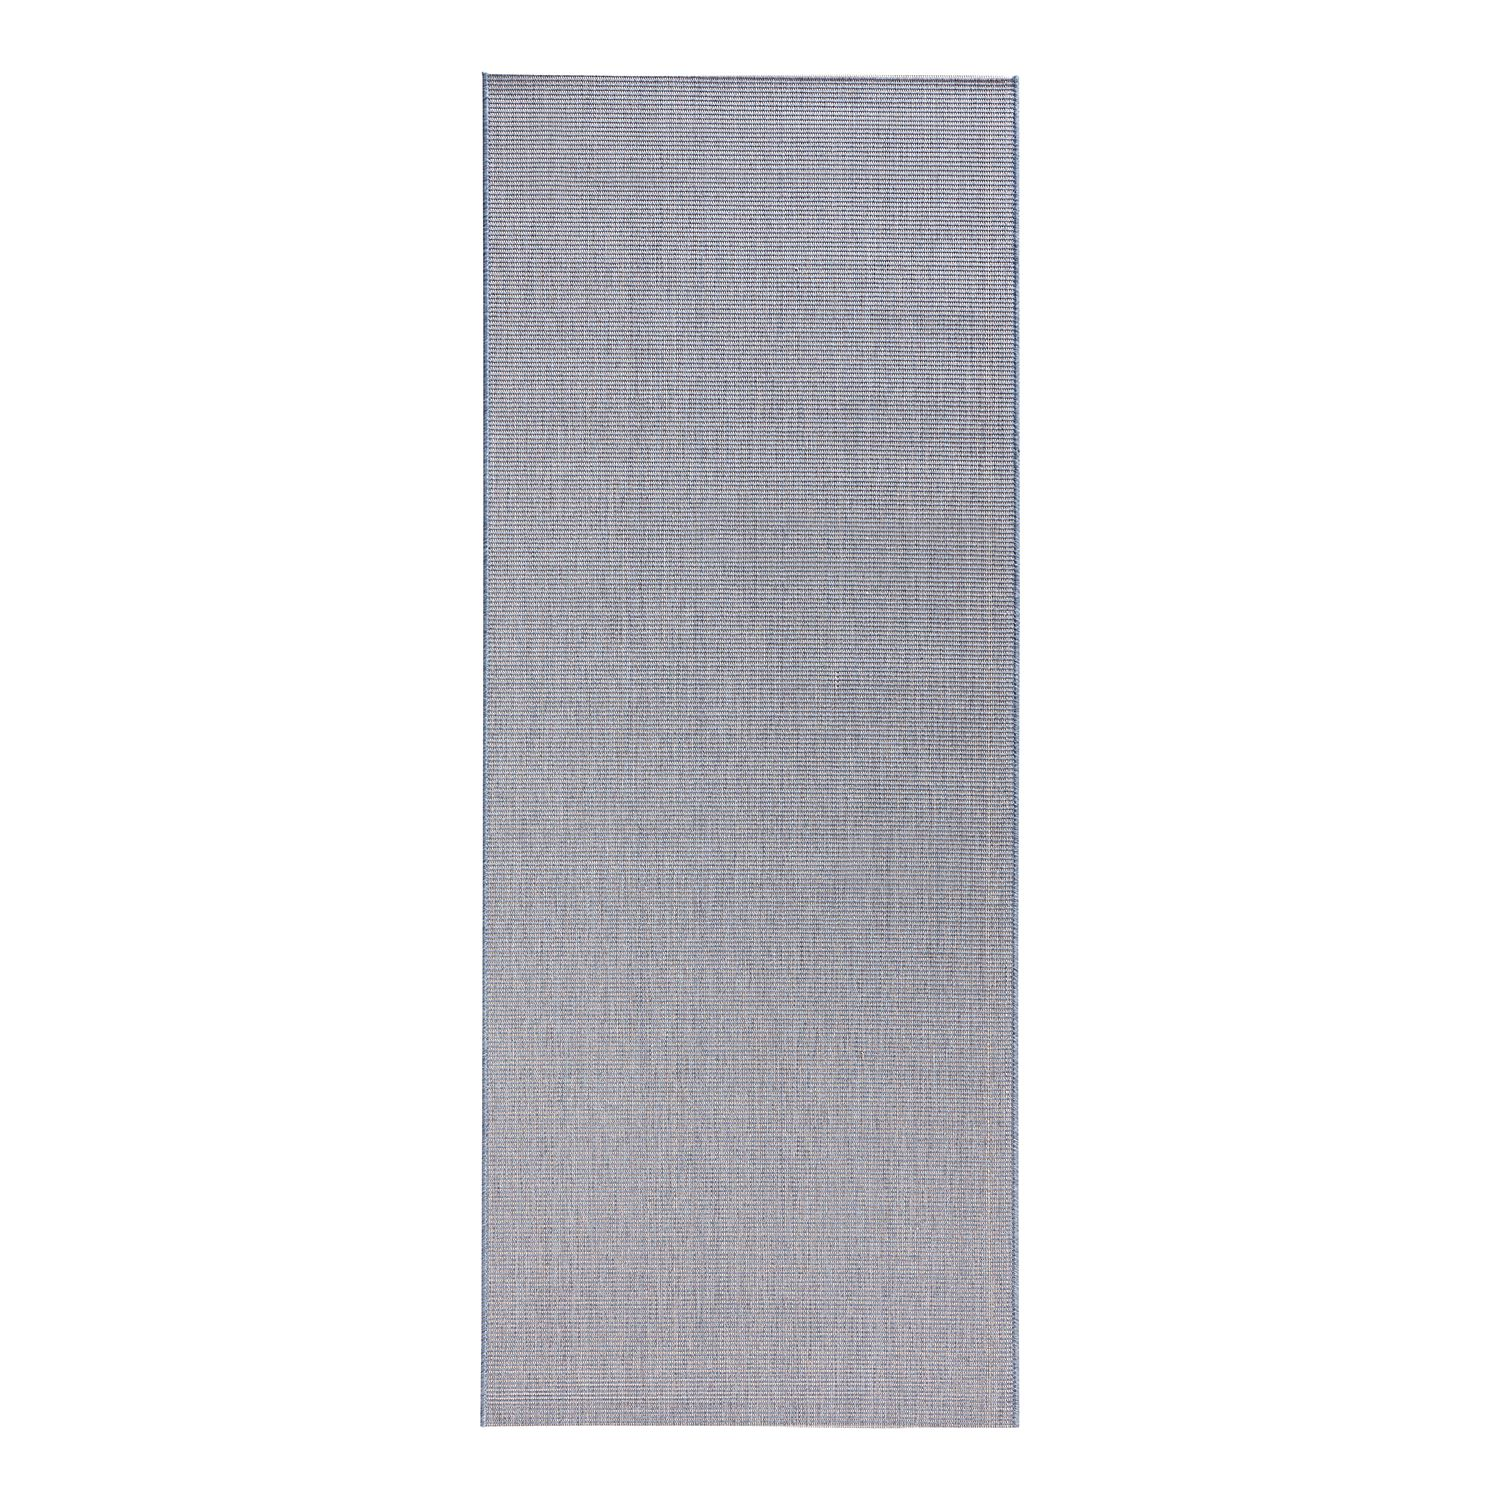 Bougari Tritooshop: tapis synthetique exterieur